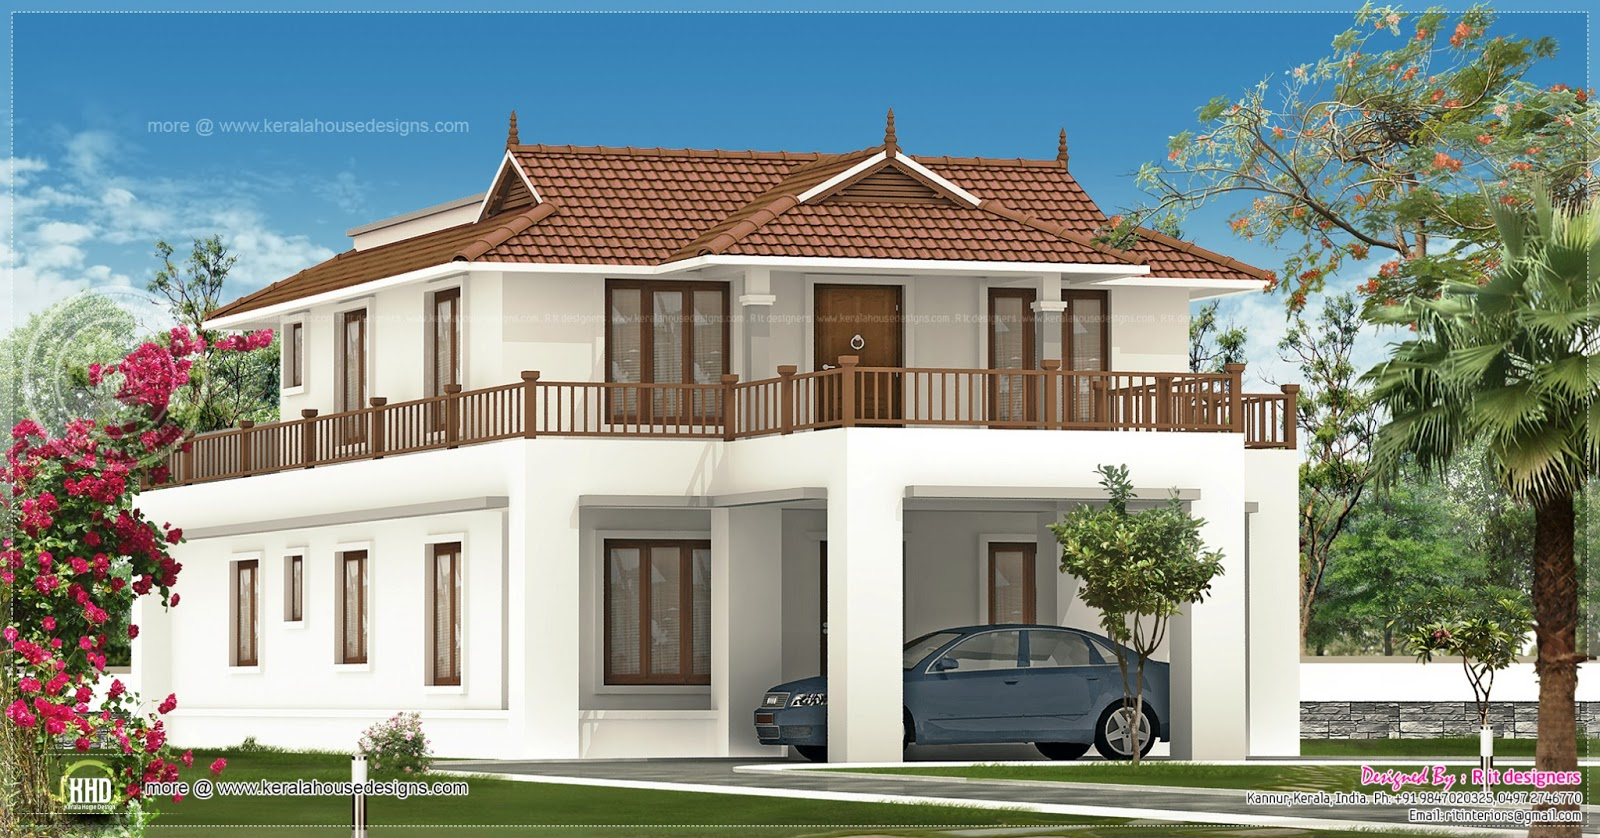 2820 square feet house exterior design kerala home - House exterior design ...